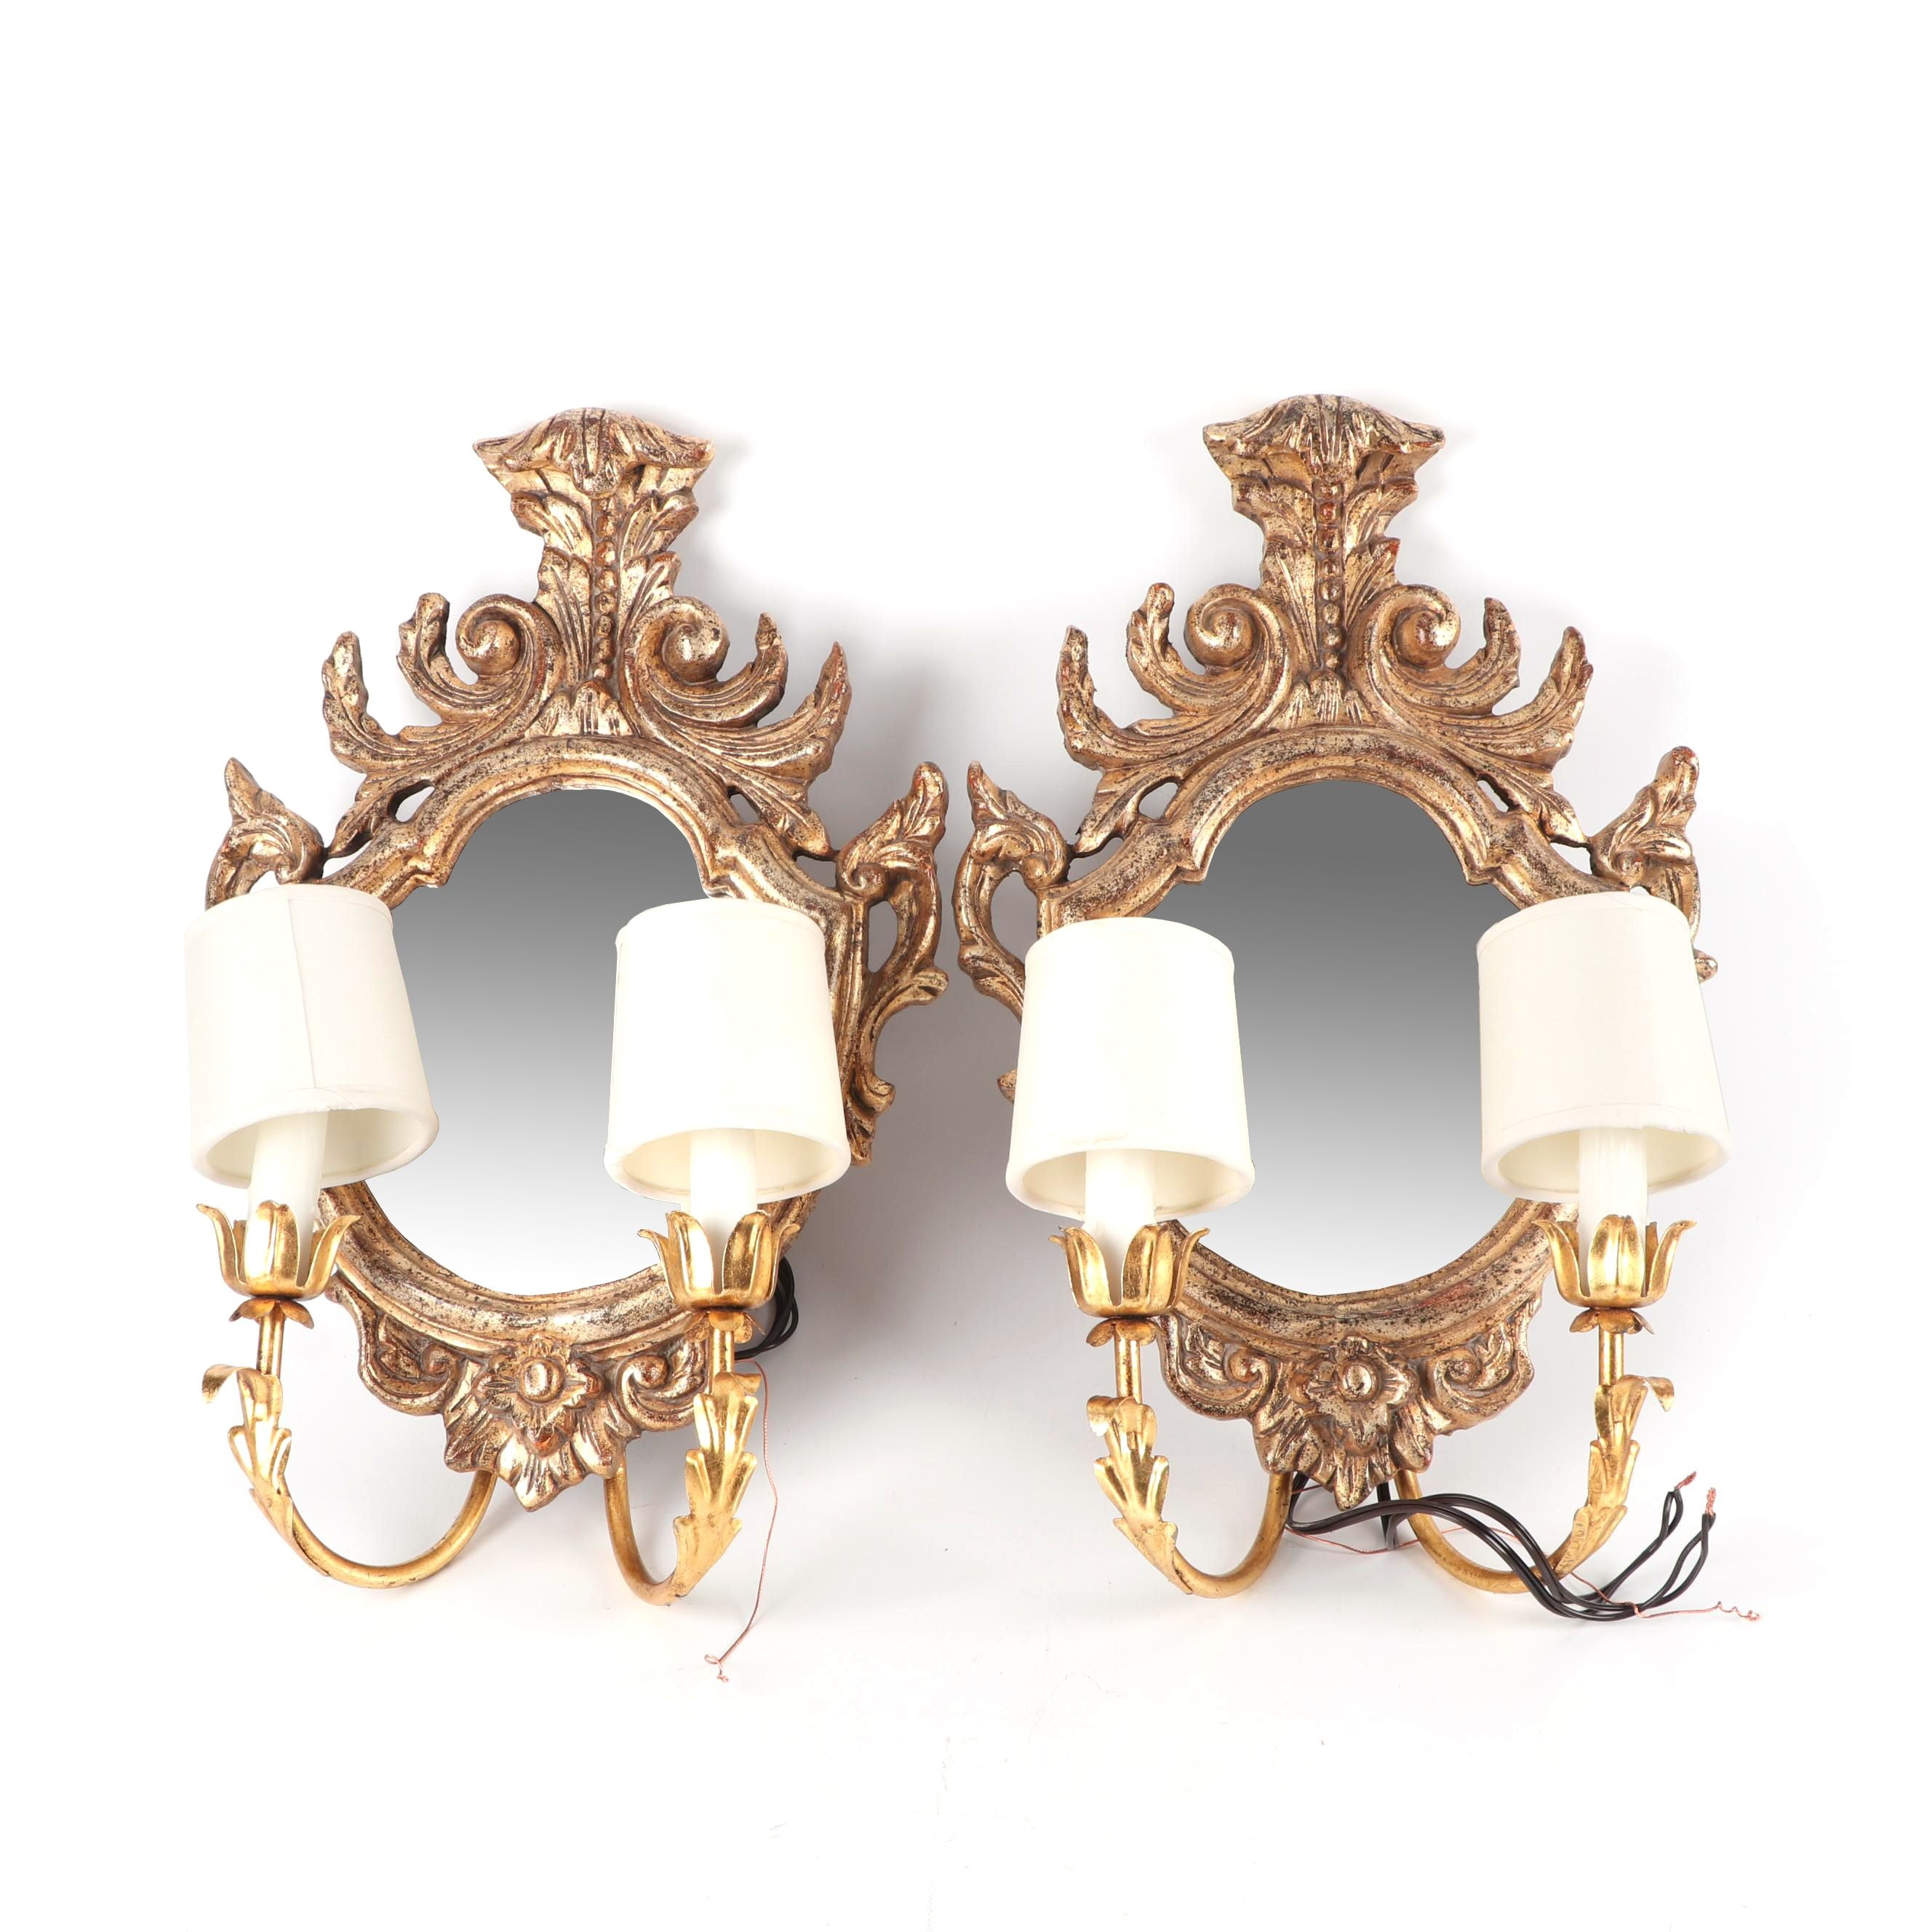 Gilt Wood and Gesso Mirrored Wall Sconces with Metalwork Arms